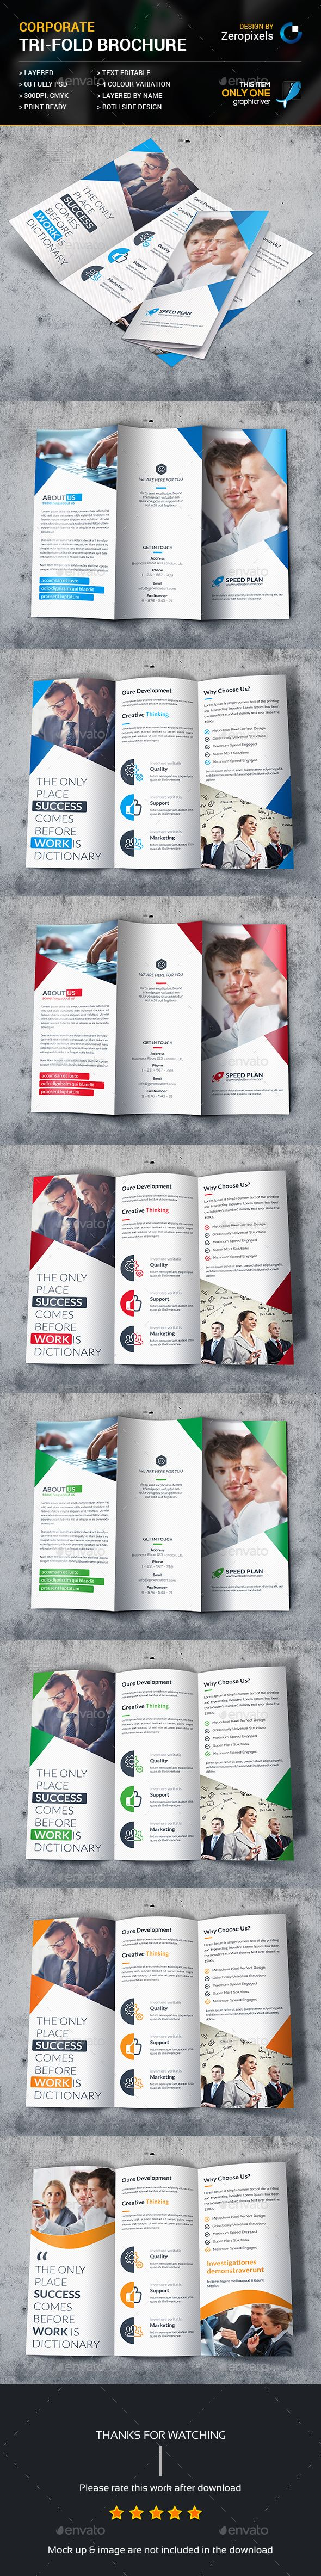 Trifold Brochure Template PSD. Download here: http://graphicriver.net/item/trifold-brochure/15296879?ref=ksioks